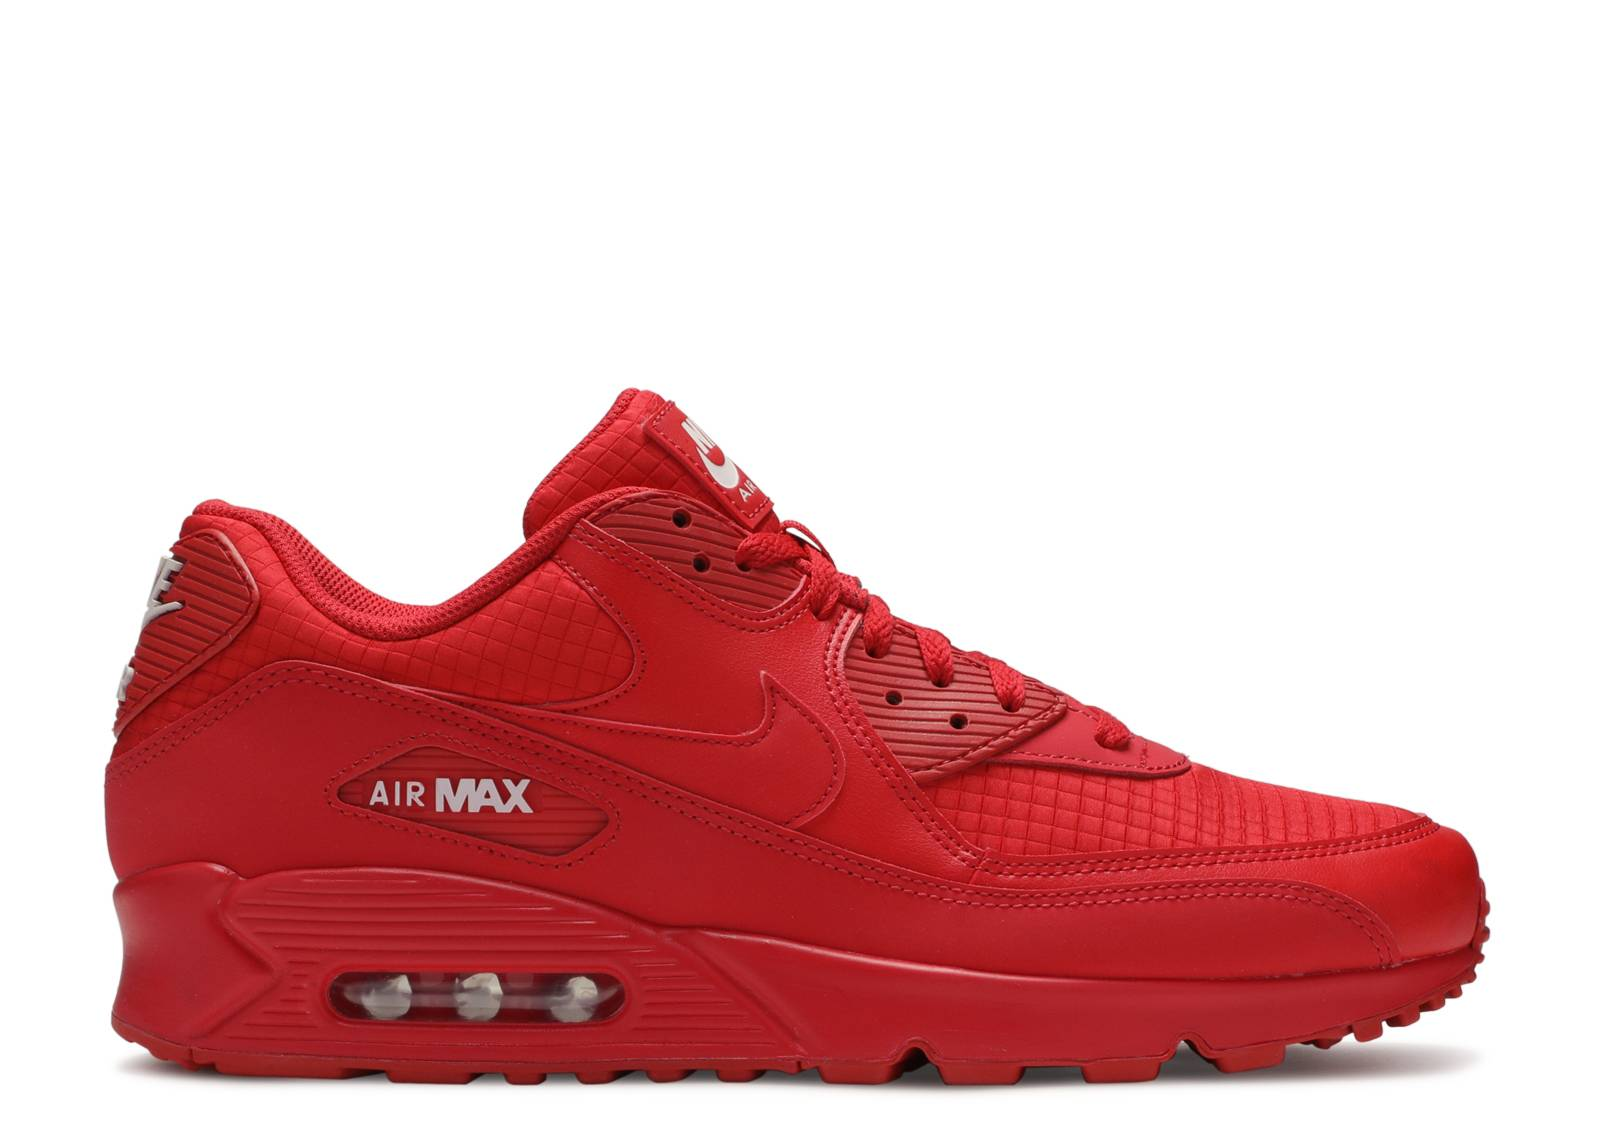 separation shoes 4751a acf69 Nike Air Max 90 - Men's & Women's Shoes | Flight Club